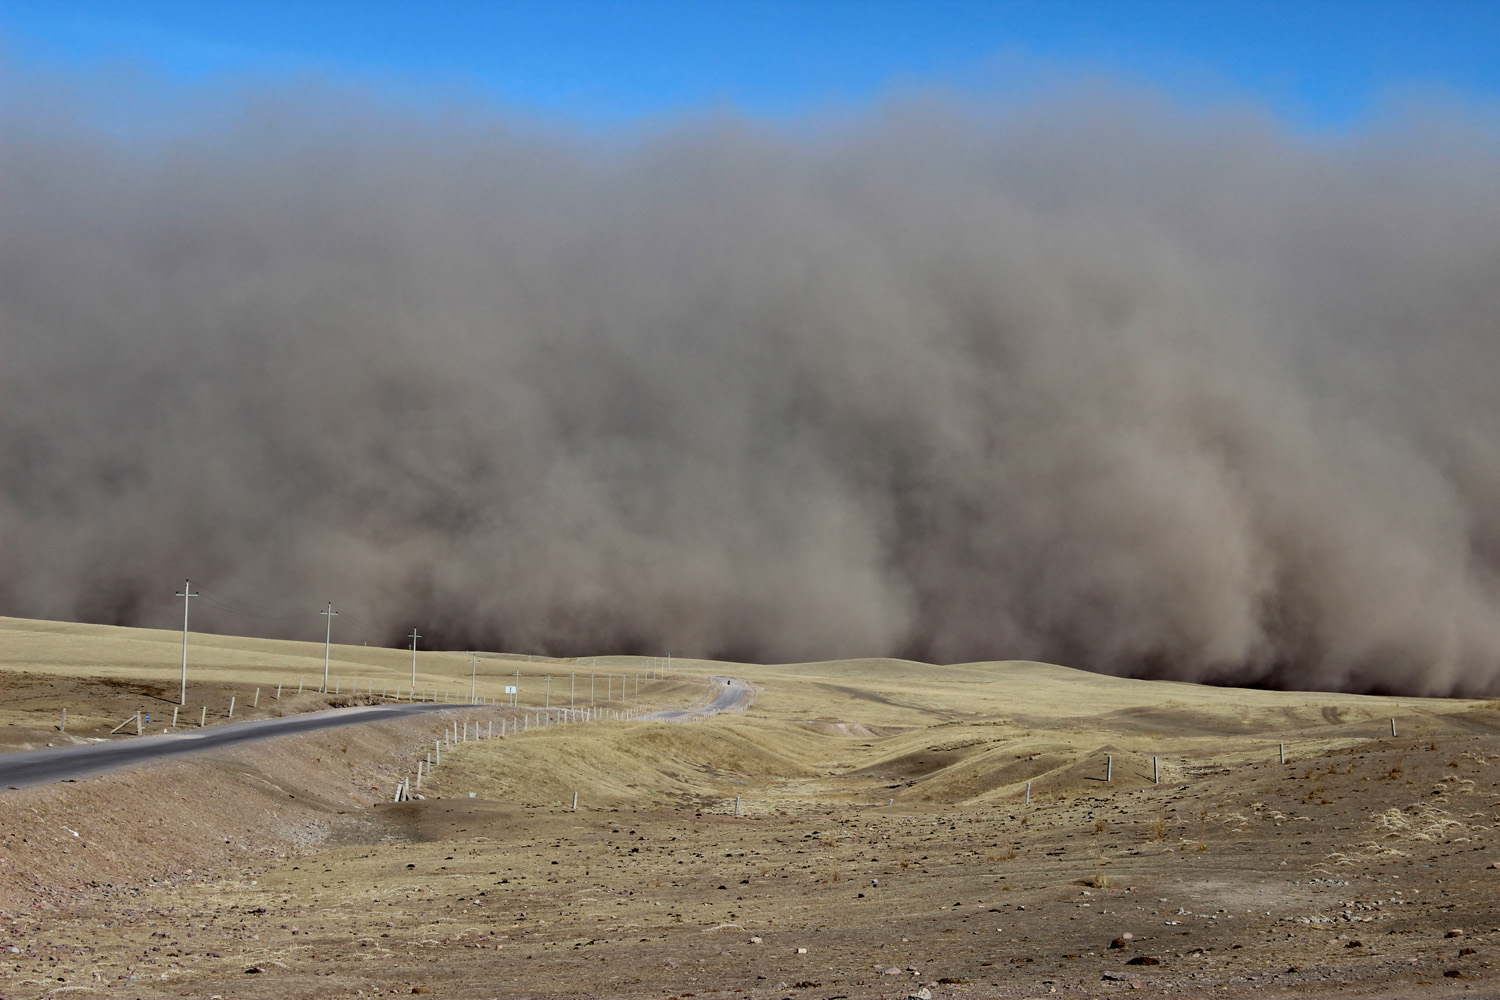 March 5, 2013. A sandstorm hits the town of Shandan Horse Ranch in Zhangye, northwest China's Gansu province.